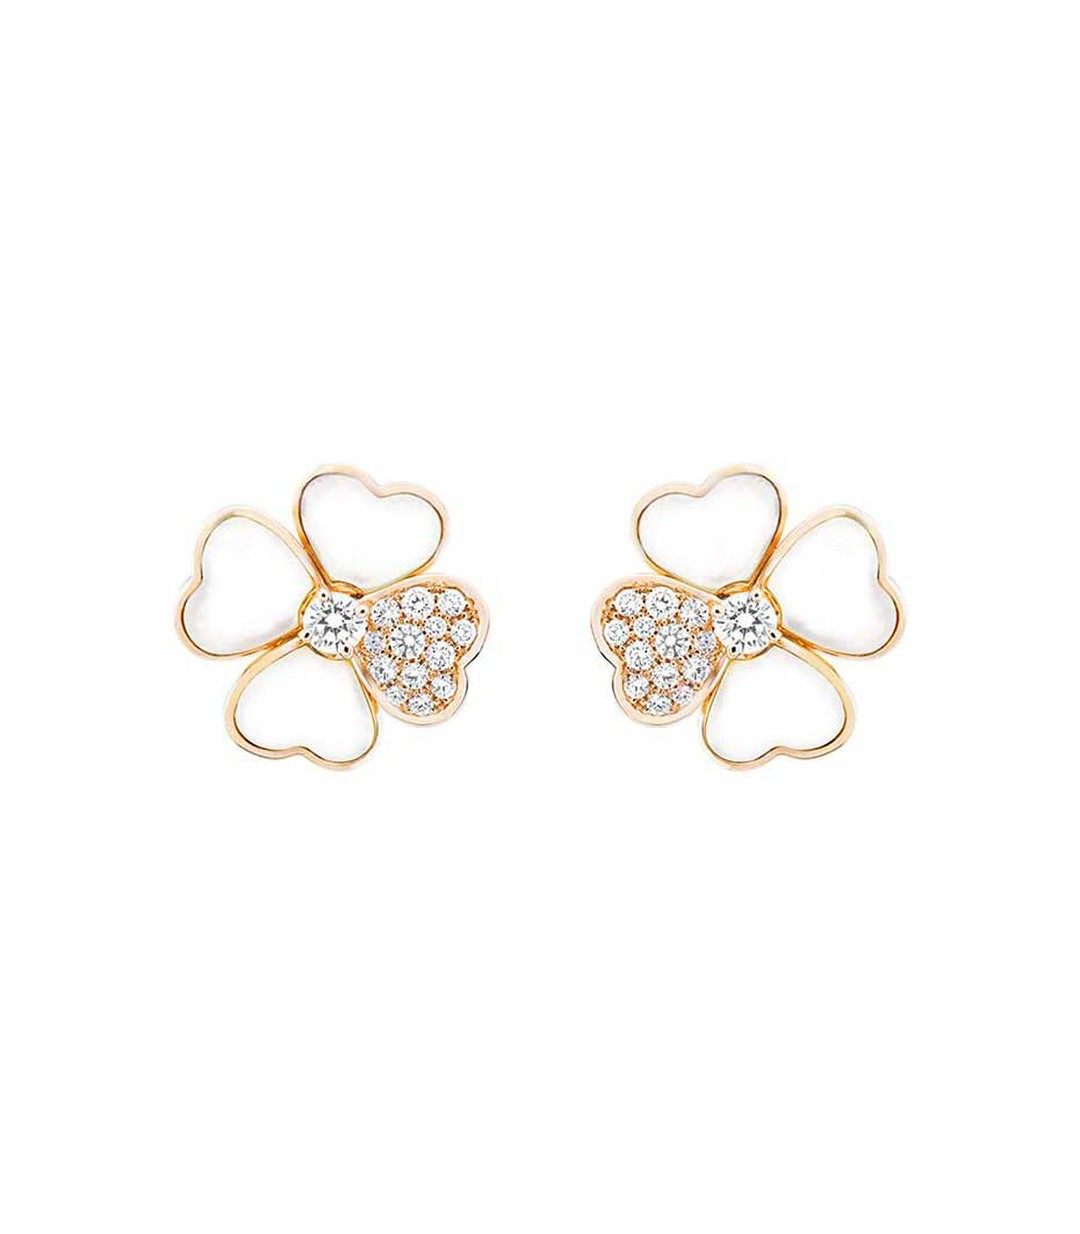 Van Cleef & Arpels Cosmos earrings in rose gold with brilliant-cut diamond buds surrounded by white mother-of-pearl and diamond petals (£13,700).